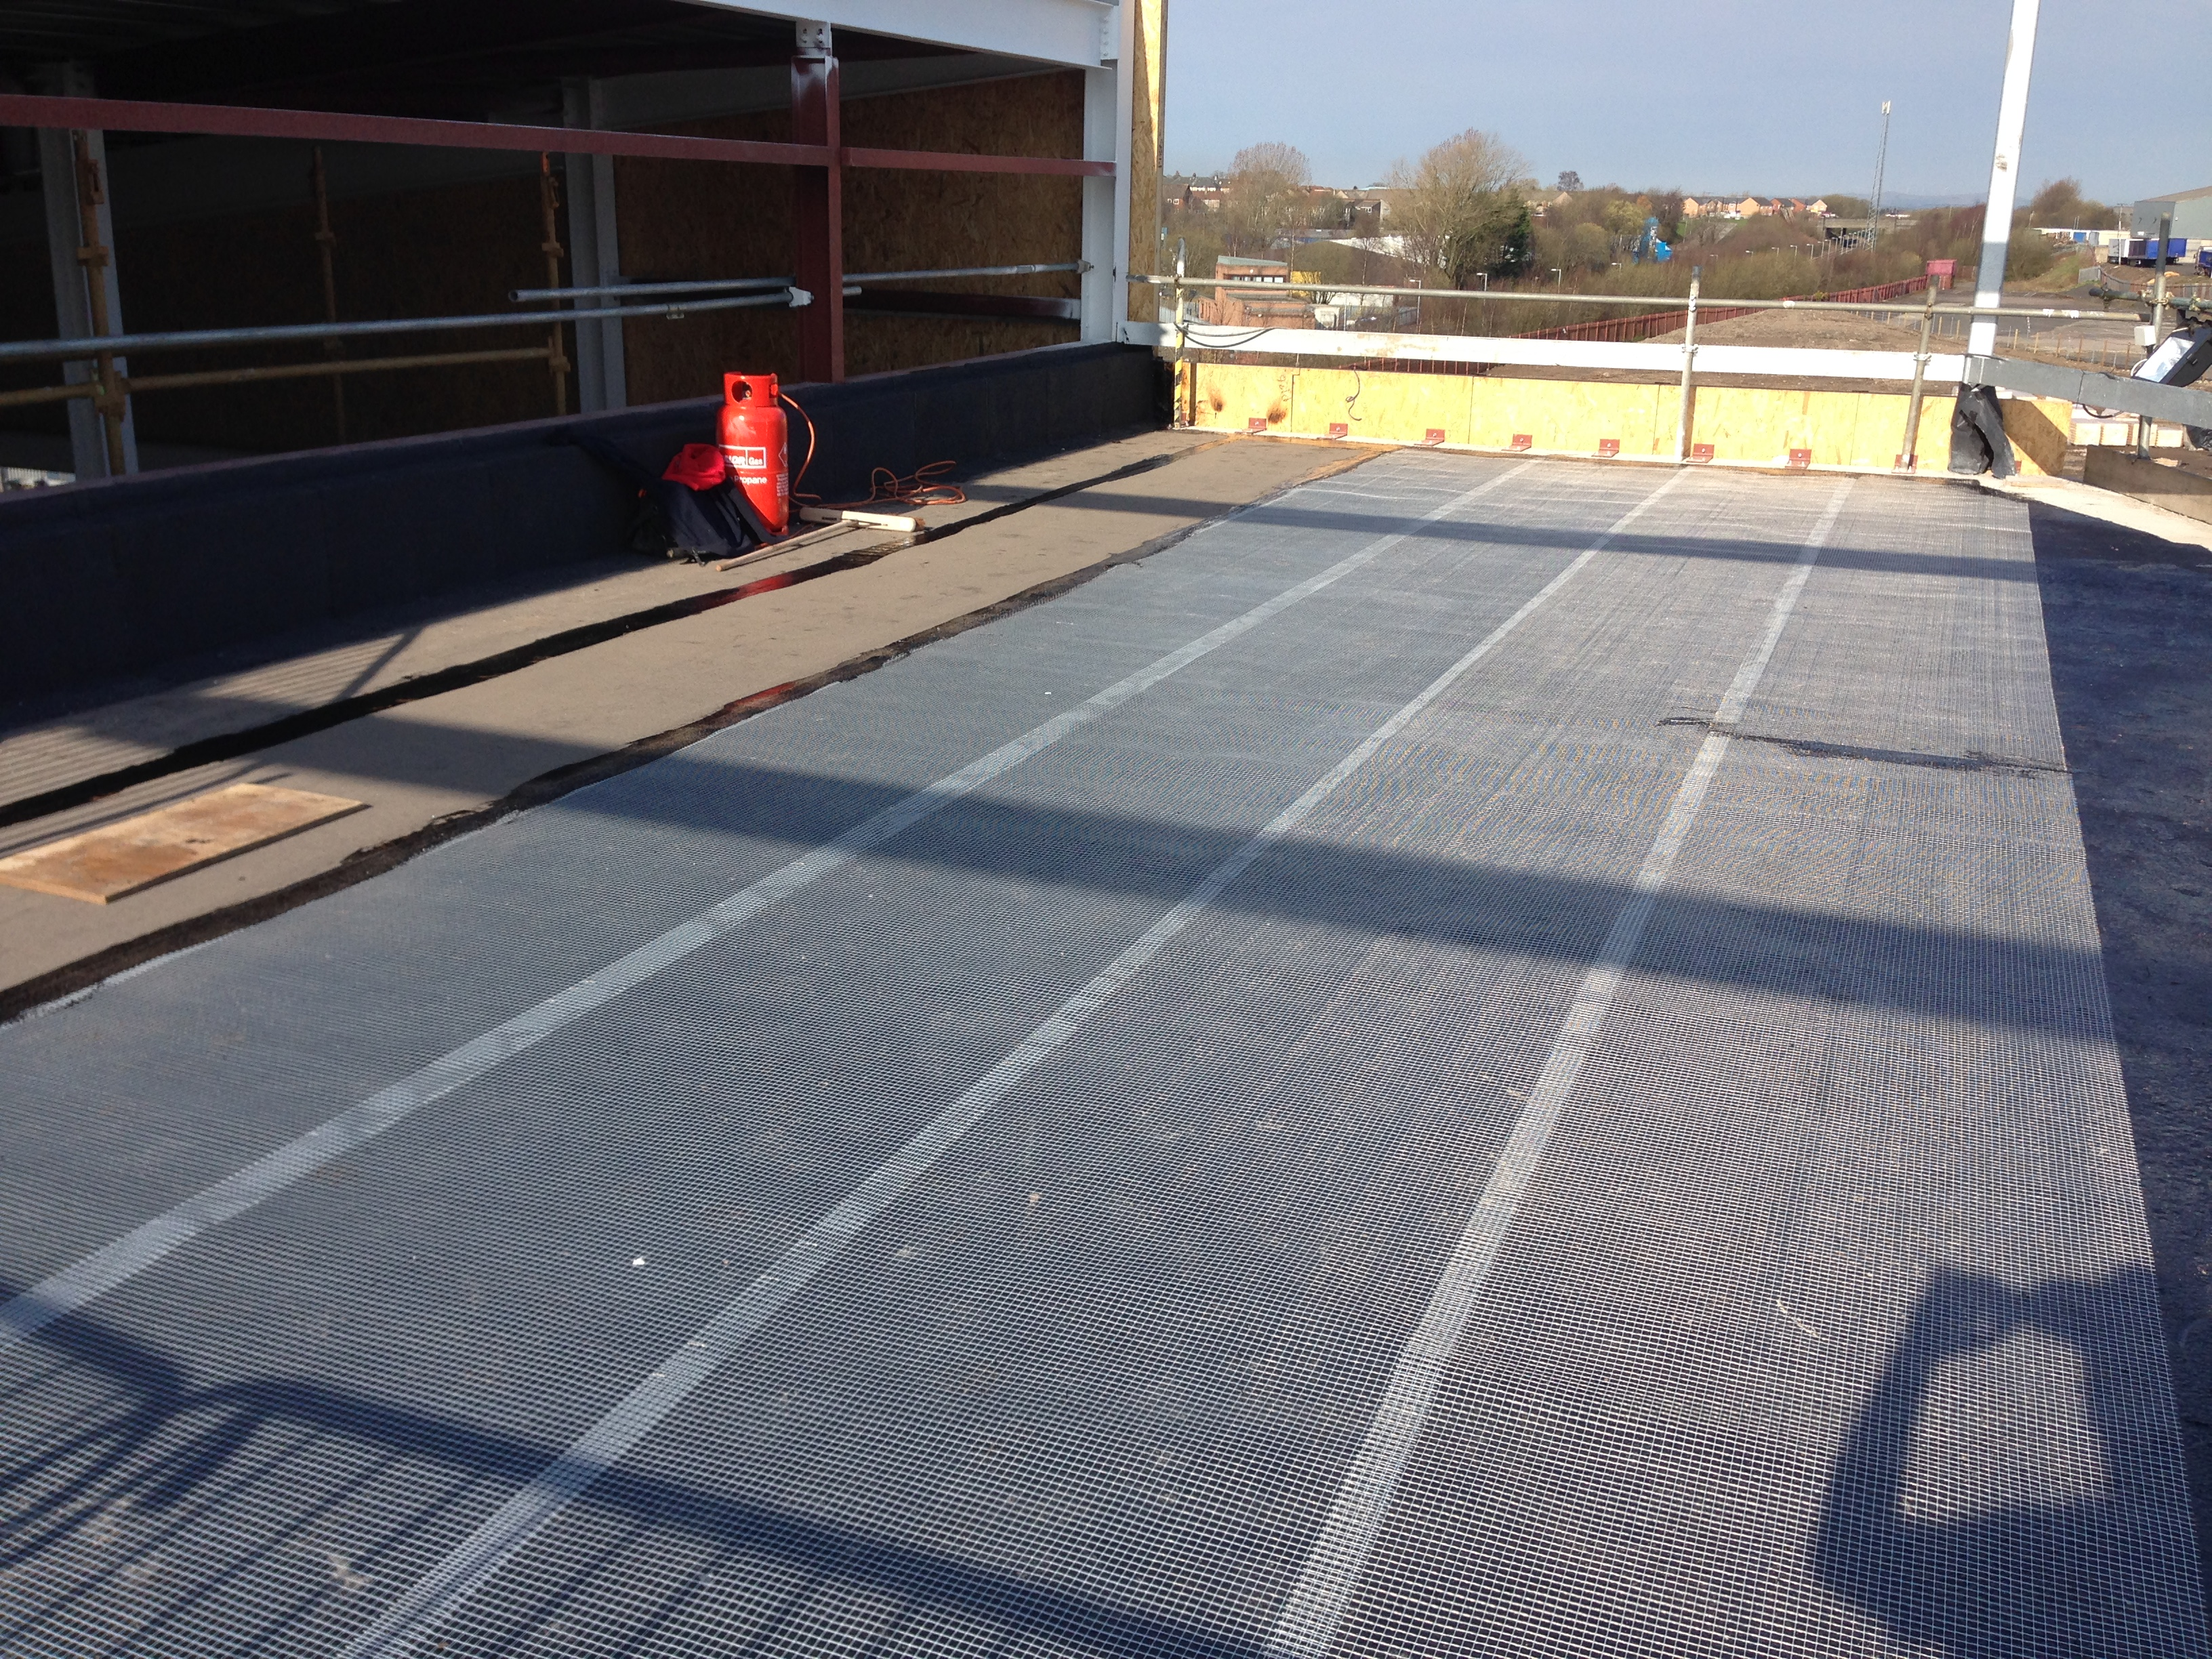 reinforcing matting installed